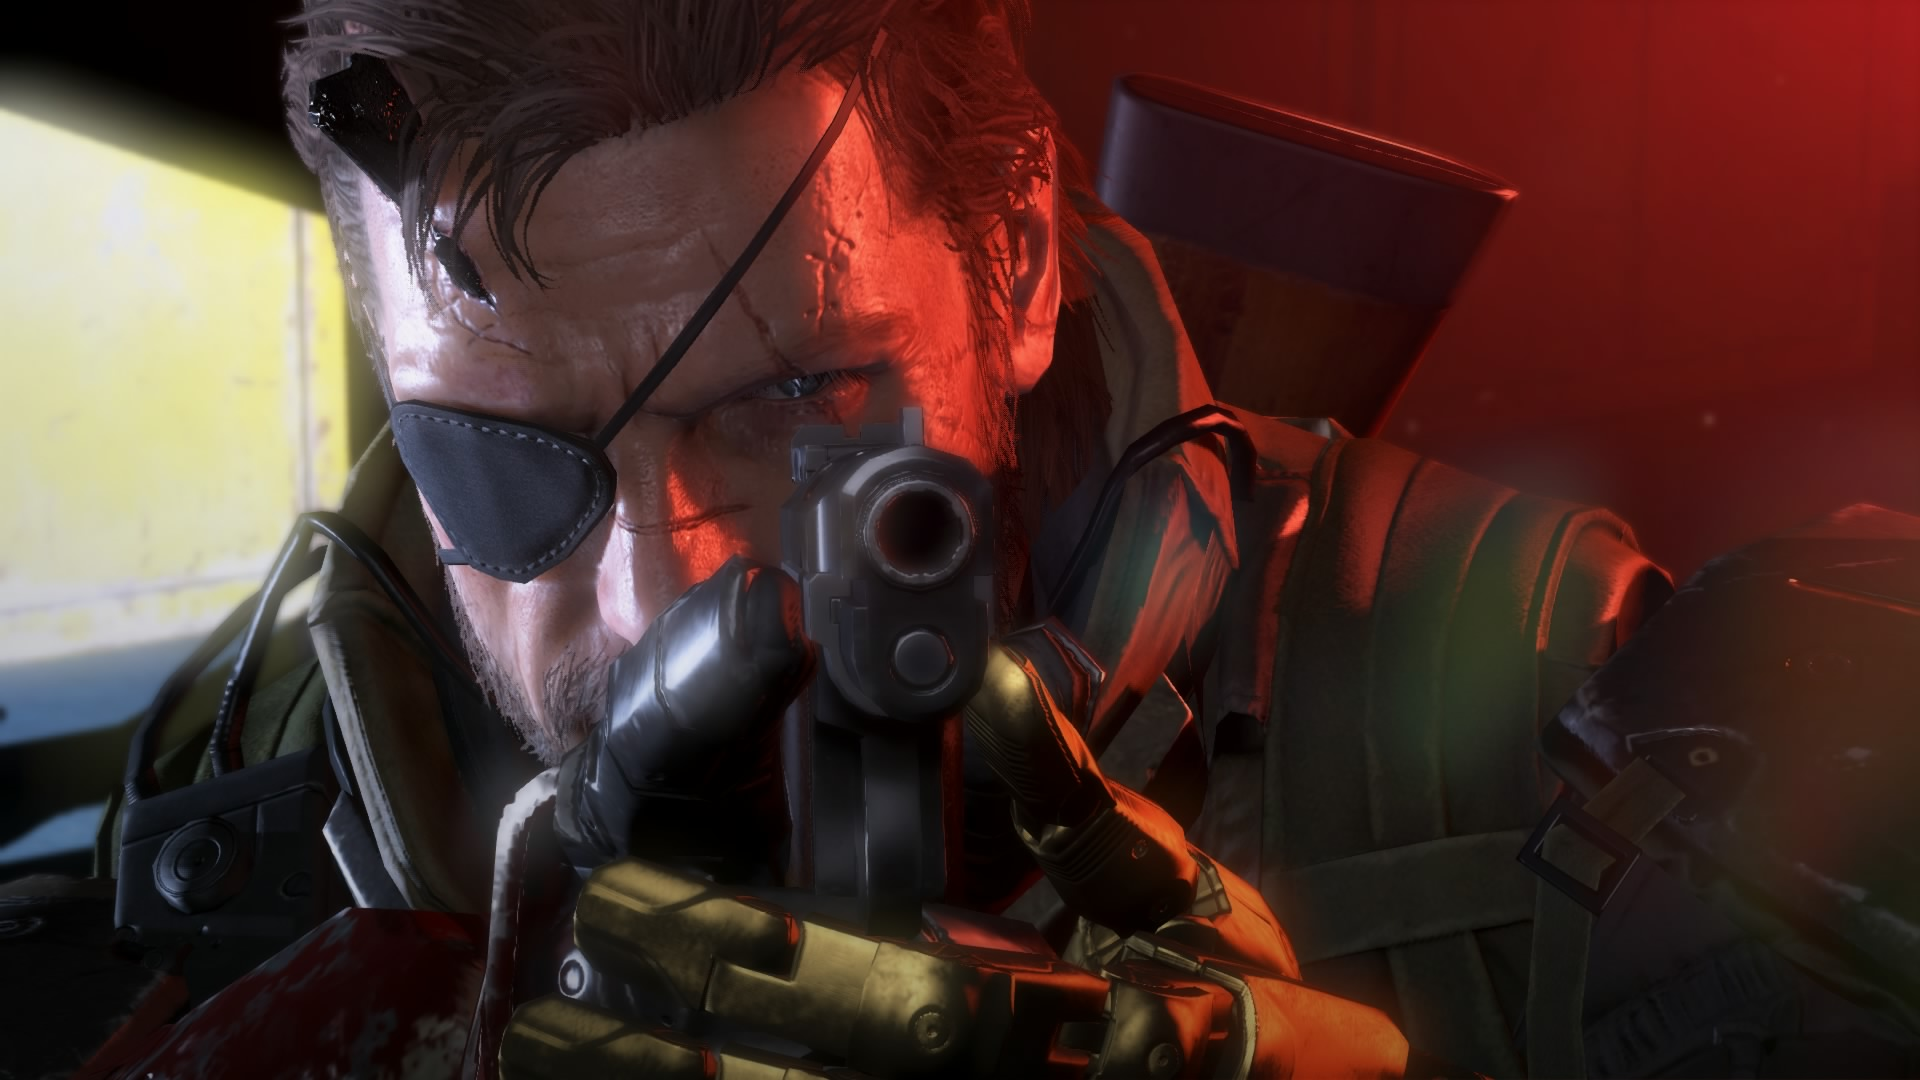 Metal gear solid 5 phantom pain release date in Brisbane